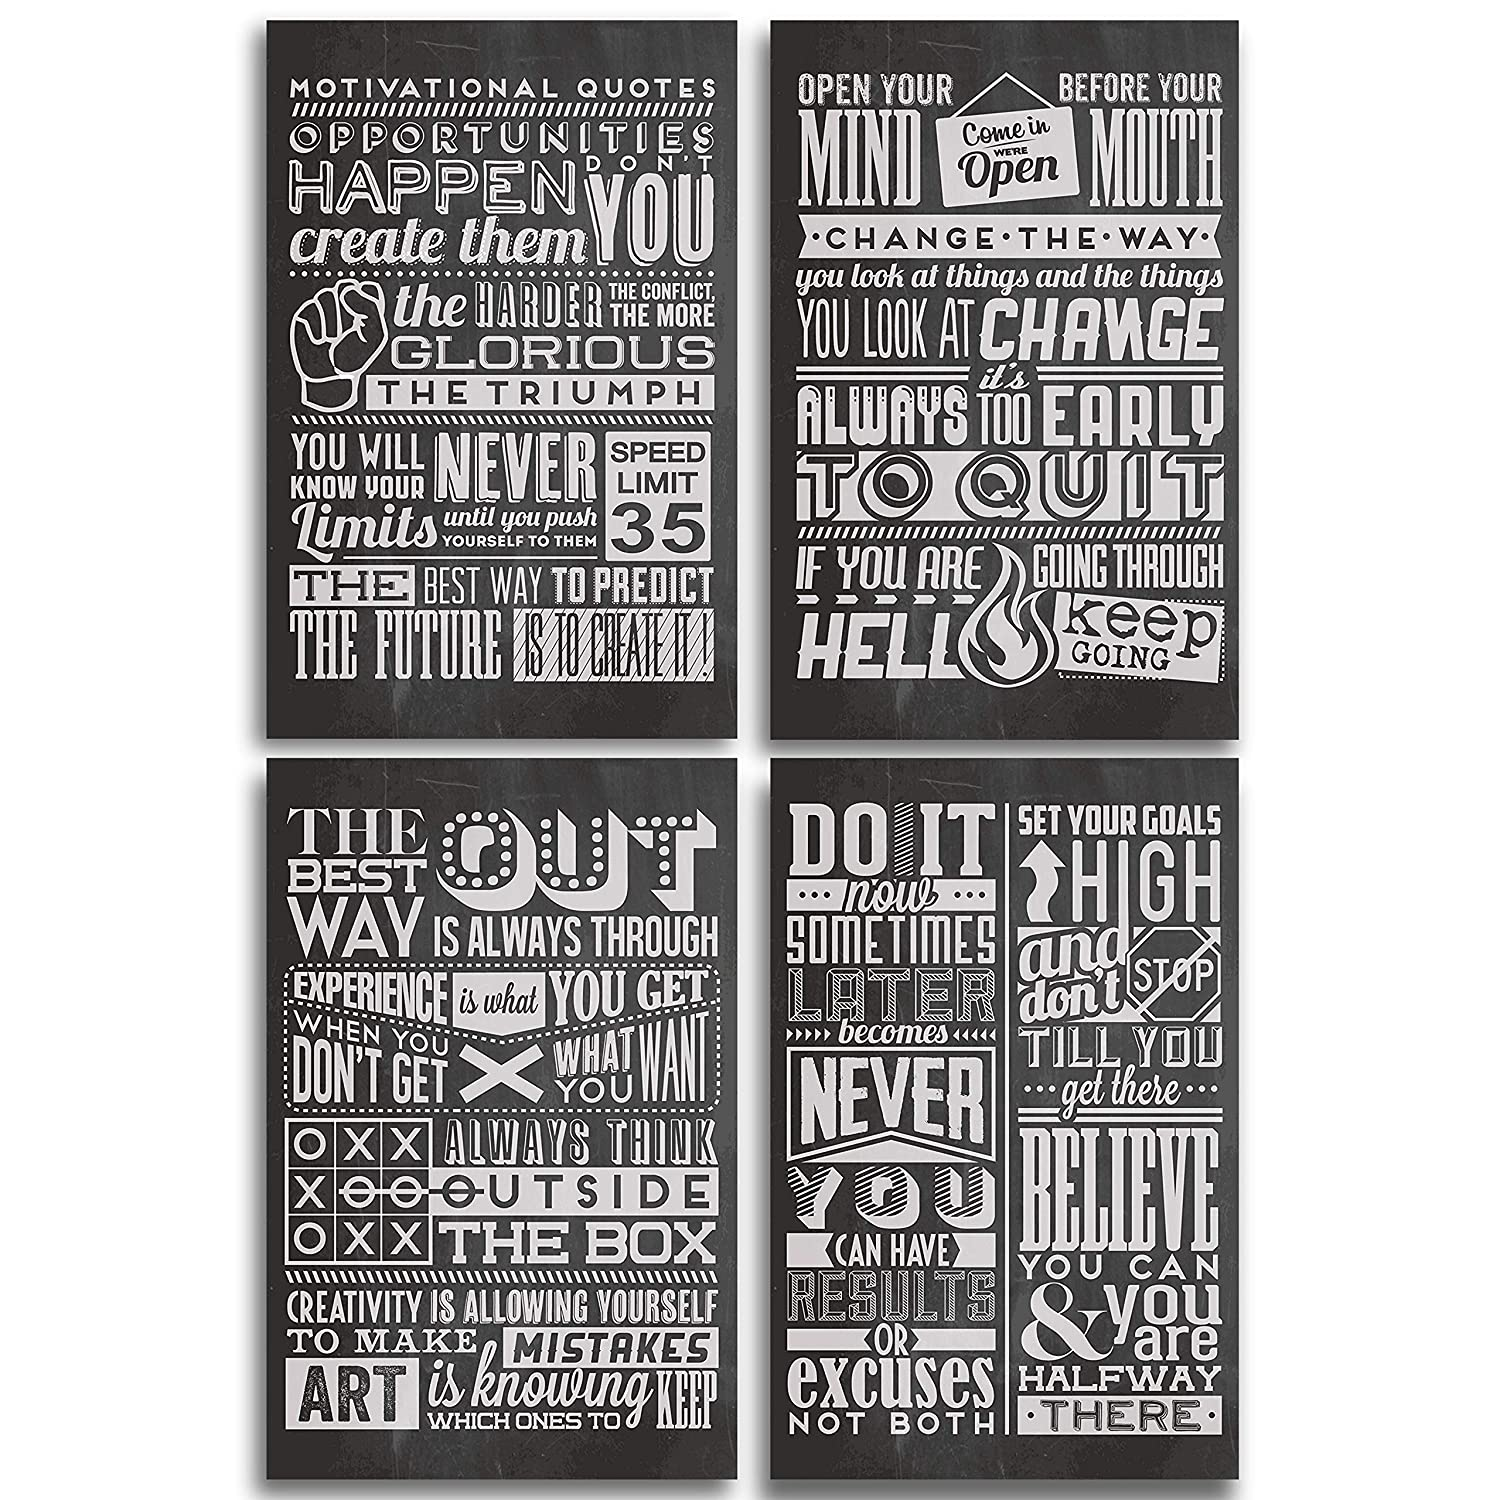 Chalkboard Motivational Inspirational Posters For Classroom Or College With Encouragement Quotes Set Of Four 11x17 Wall Art Decor Great Birthday Or Graduation Gifts For Kids Or Teens Amazon In Home Kitchen